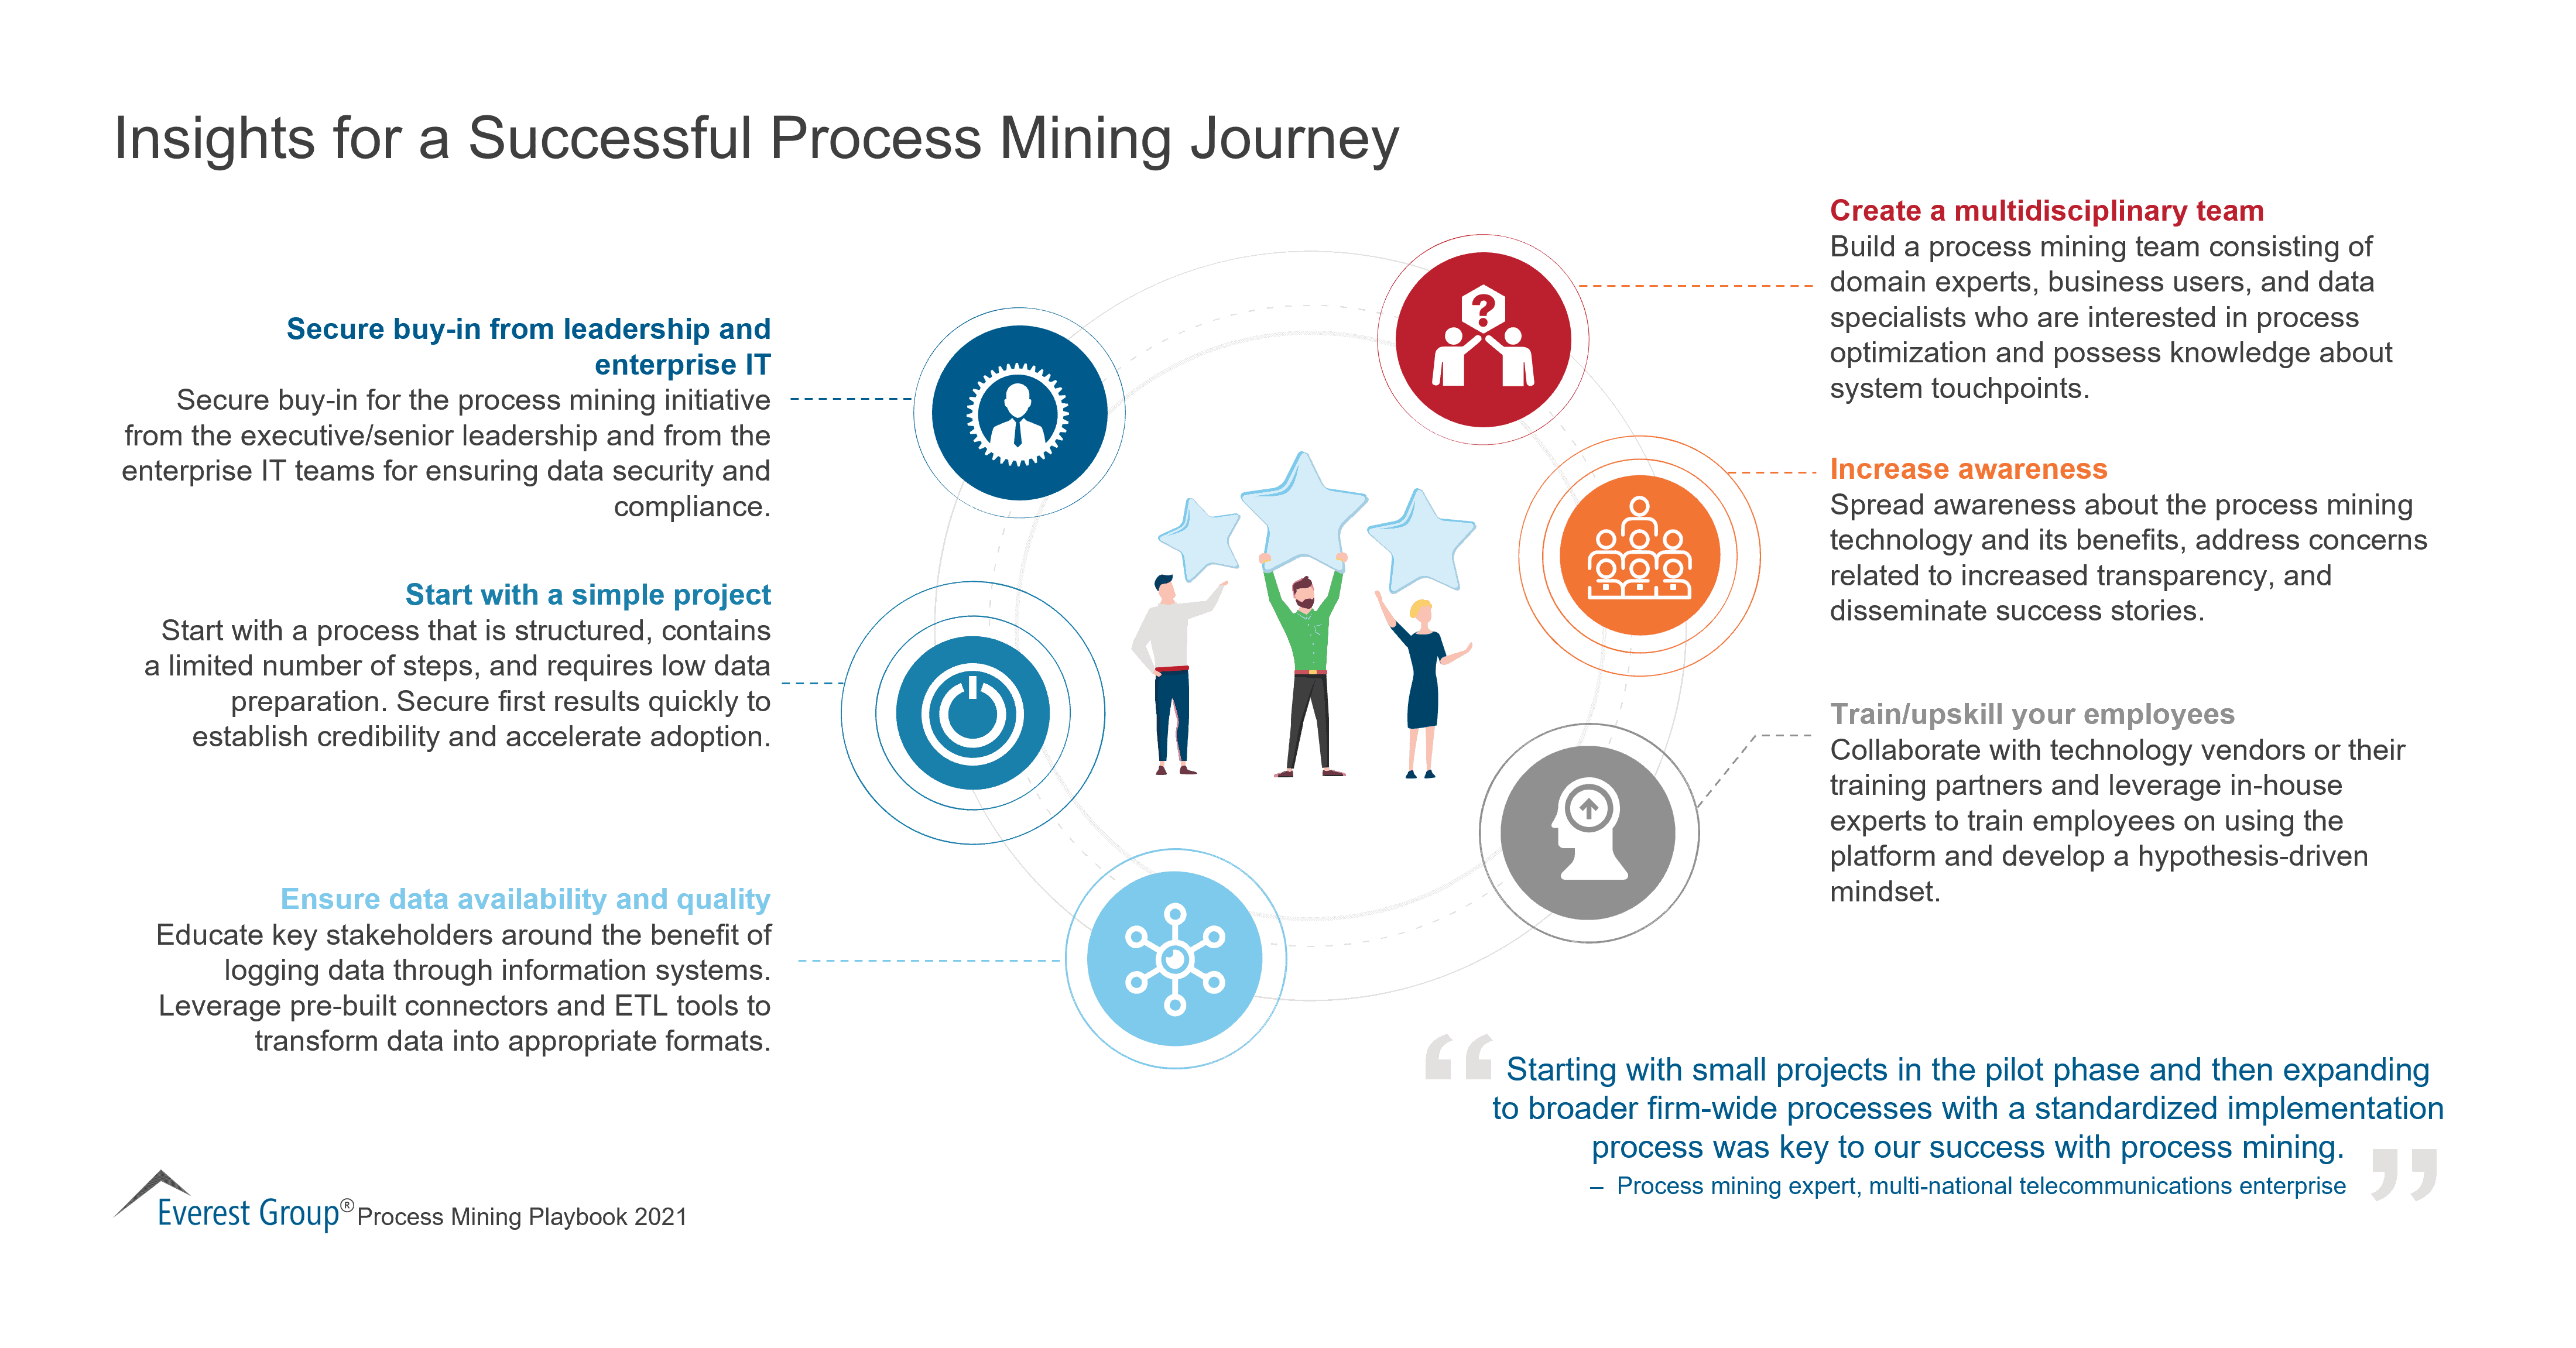 Insights for a Successful Process Mining Journey